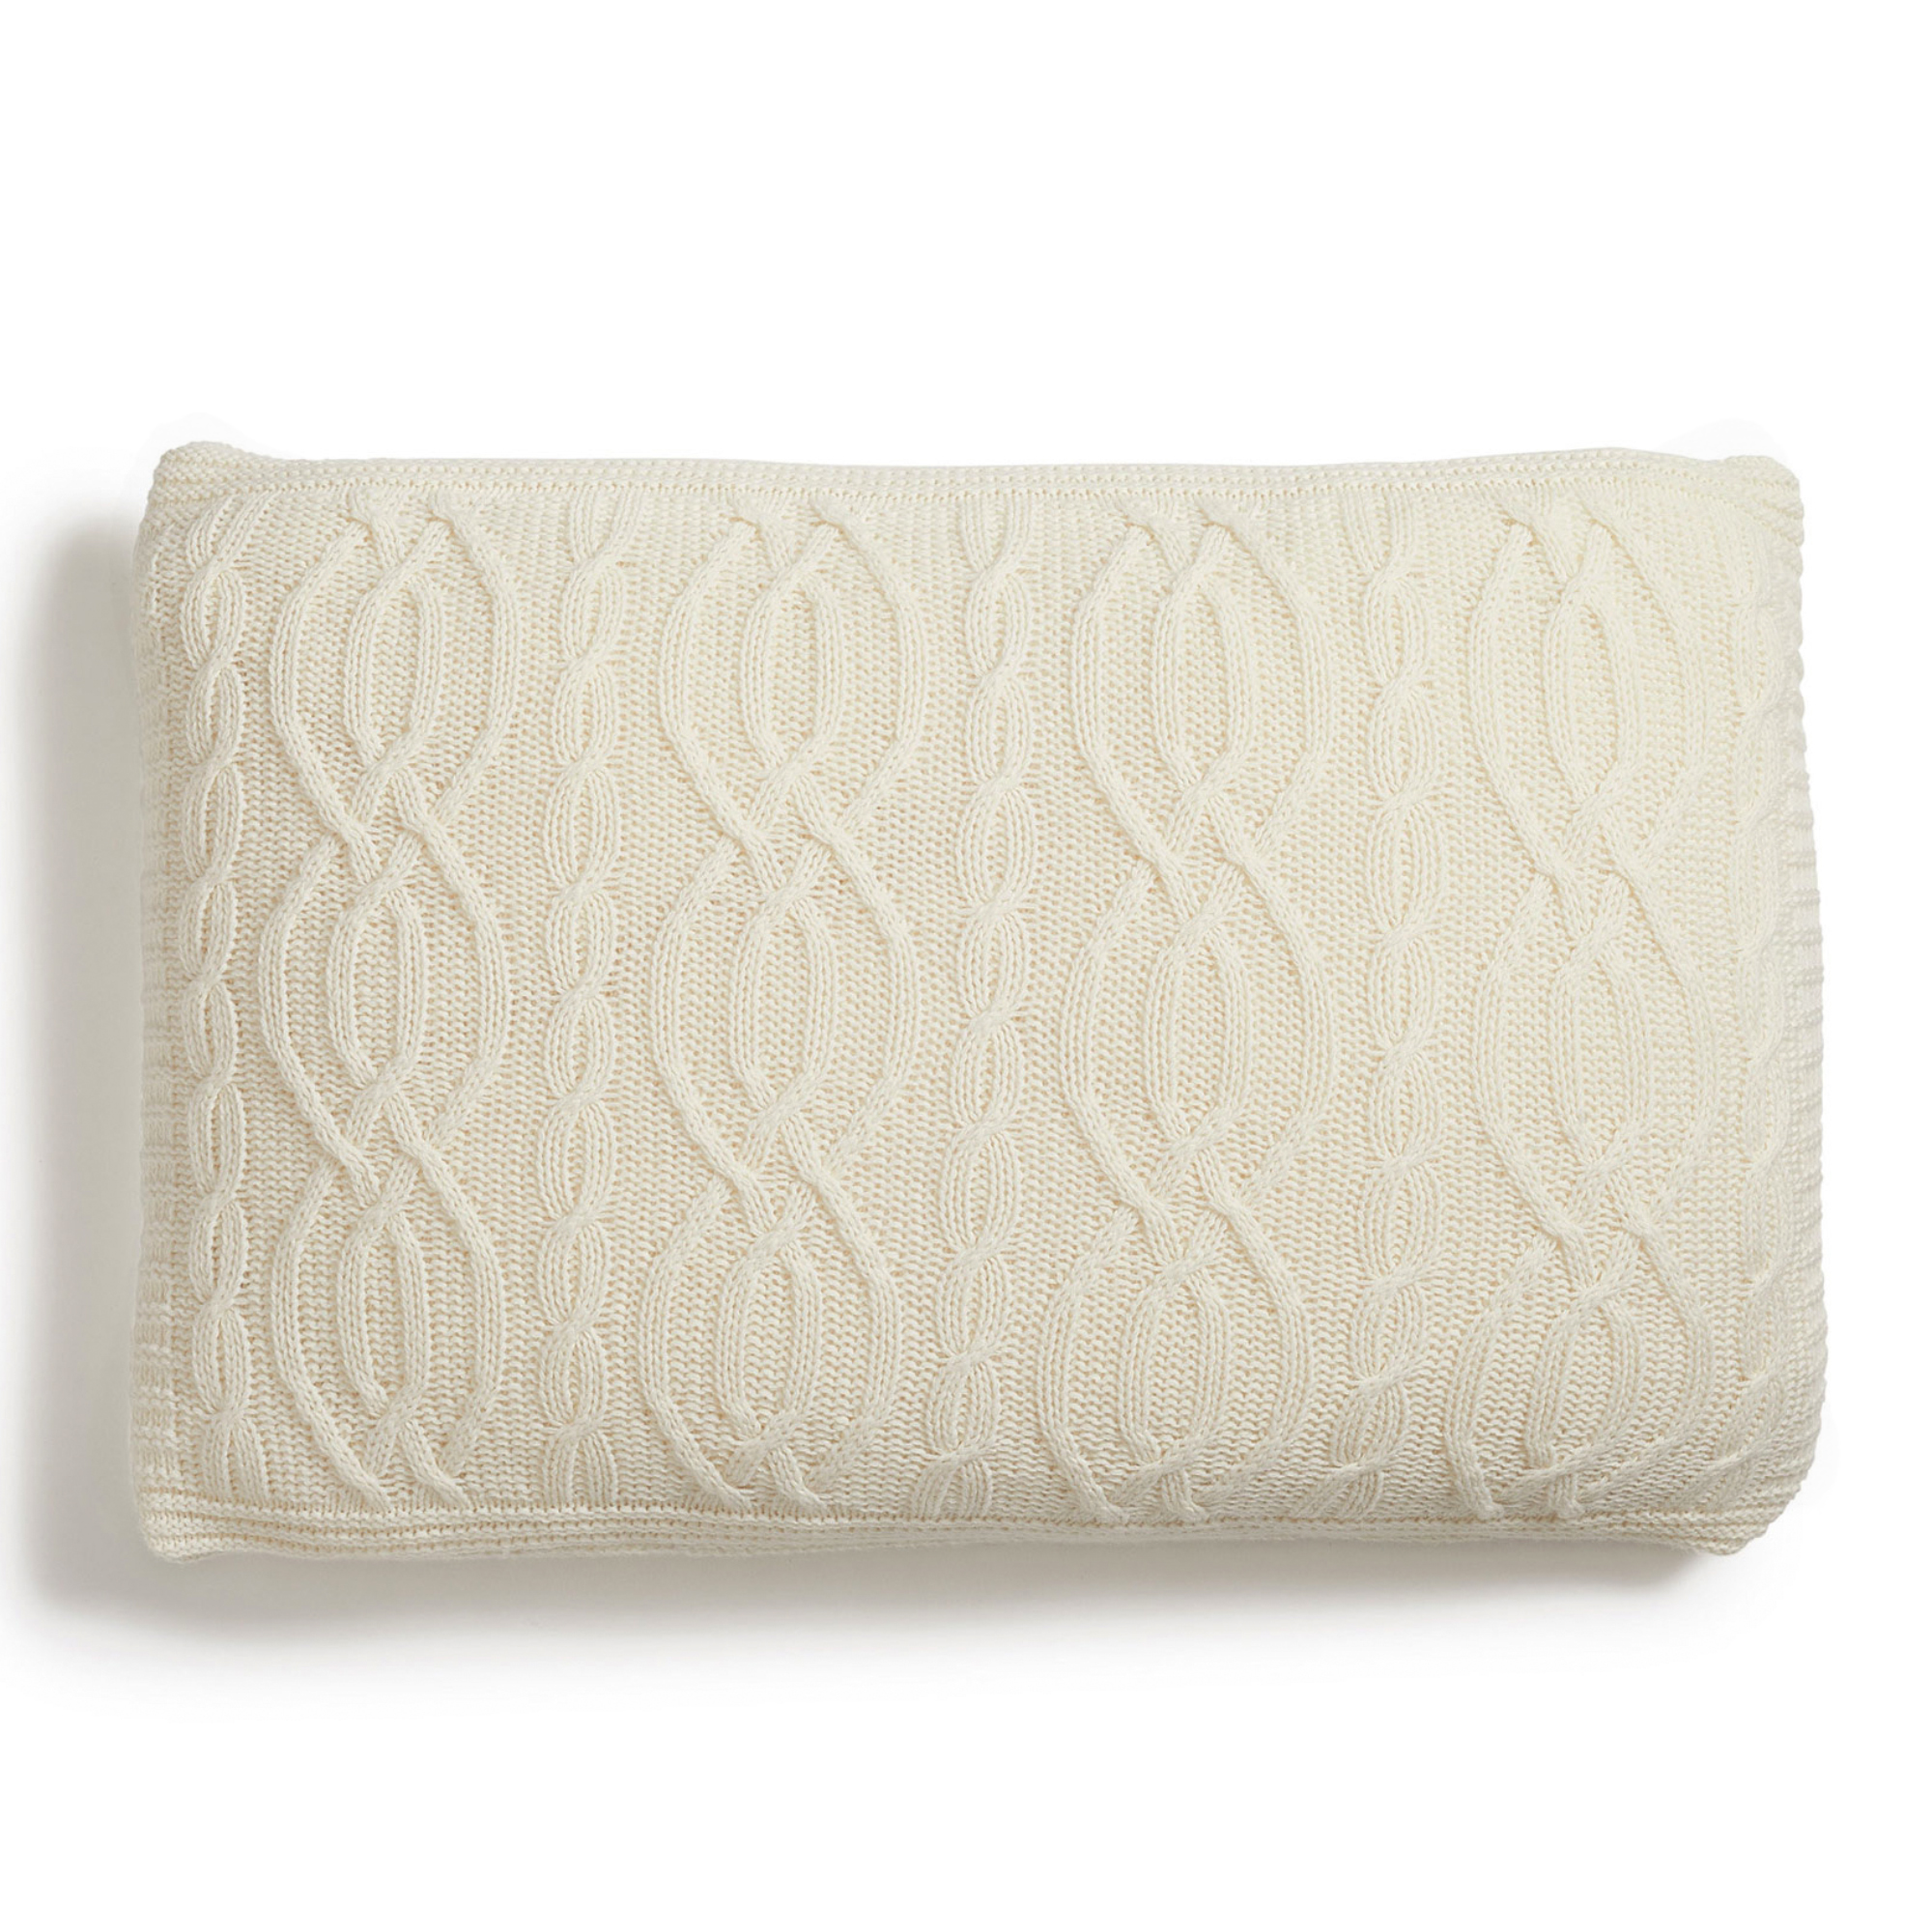 soho-house-cable-knit-cushion-ivory-square